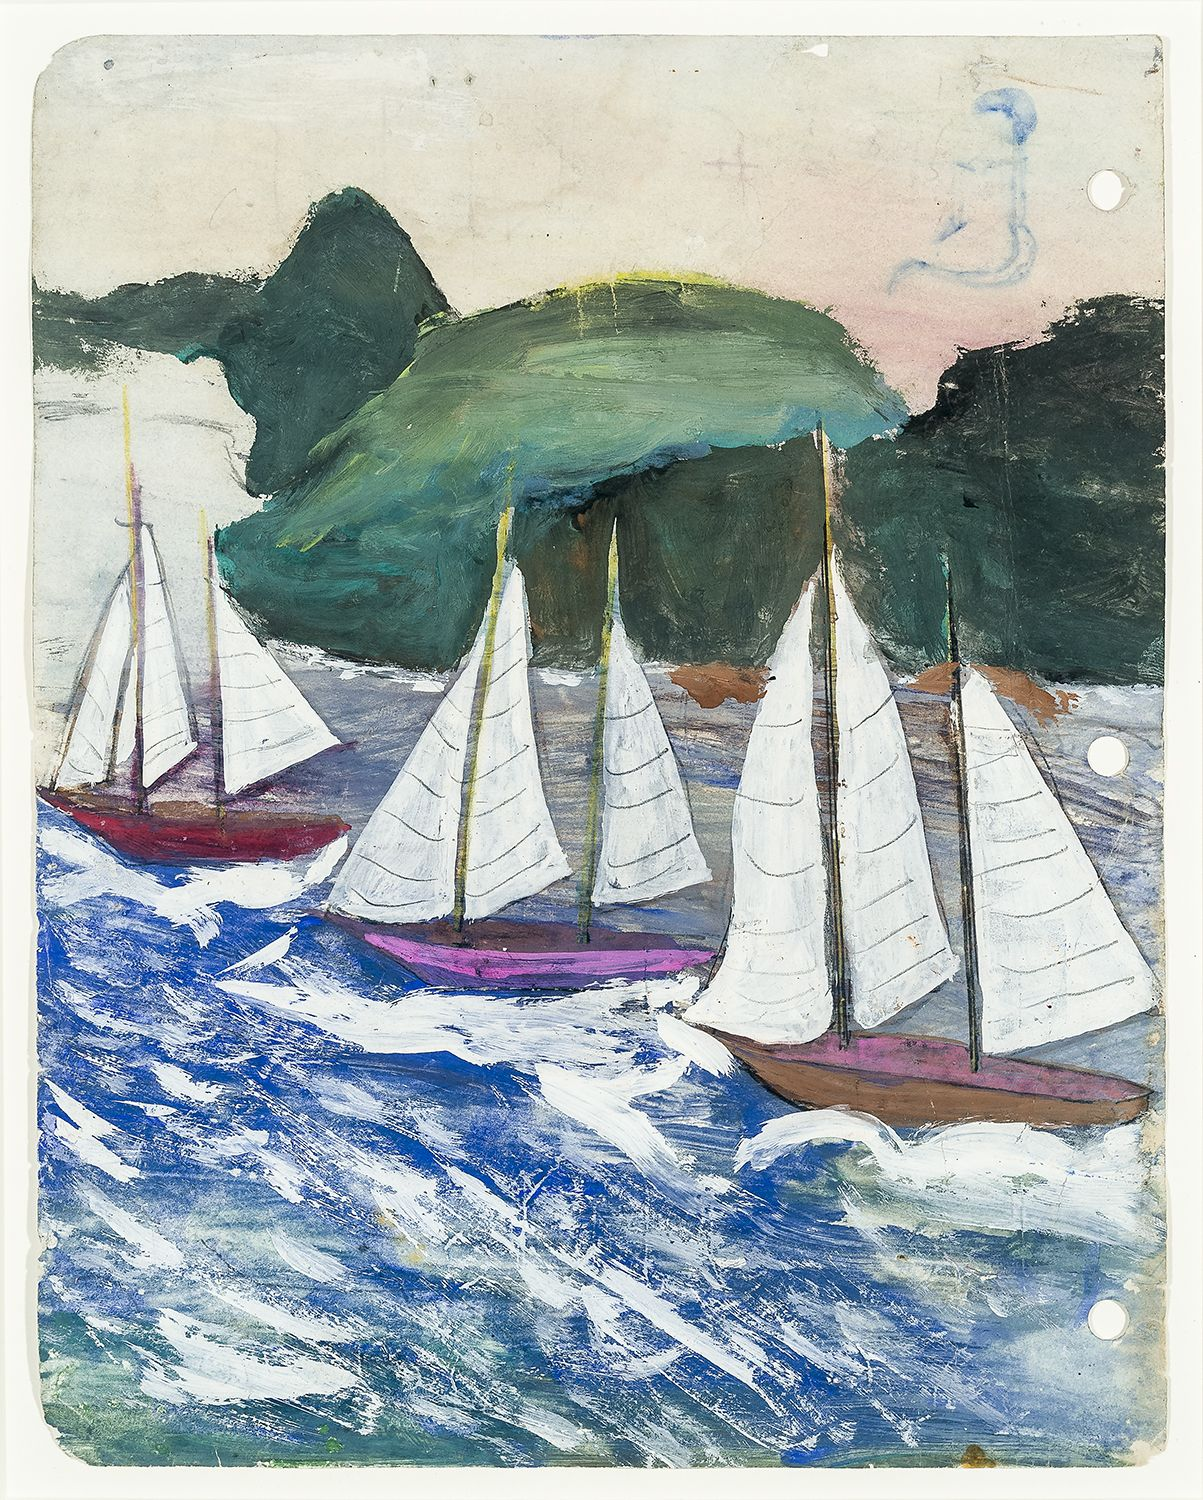 a painting by Frank Walter of boats sailing down a river